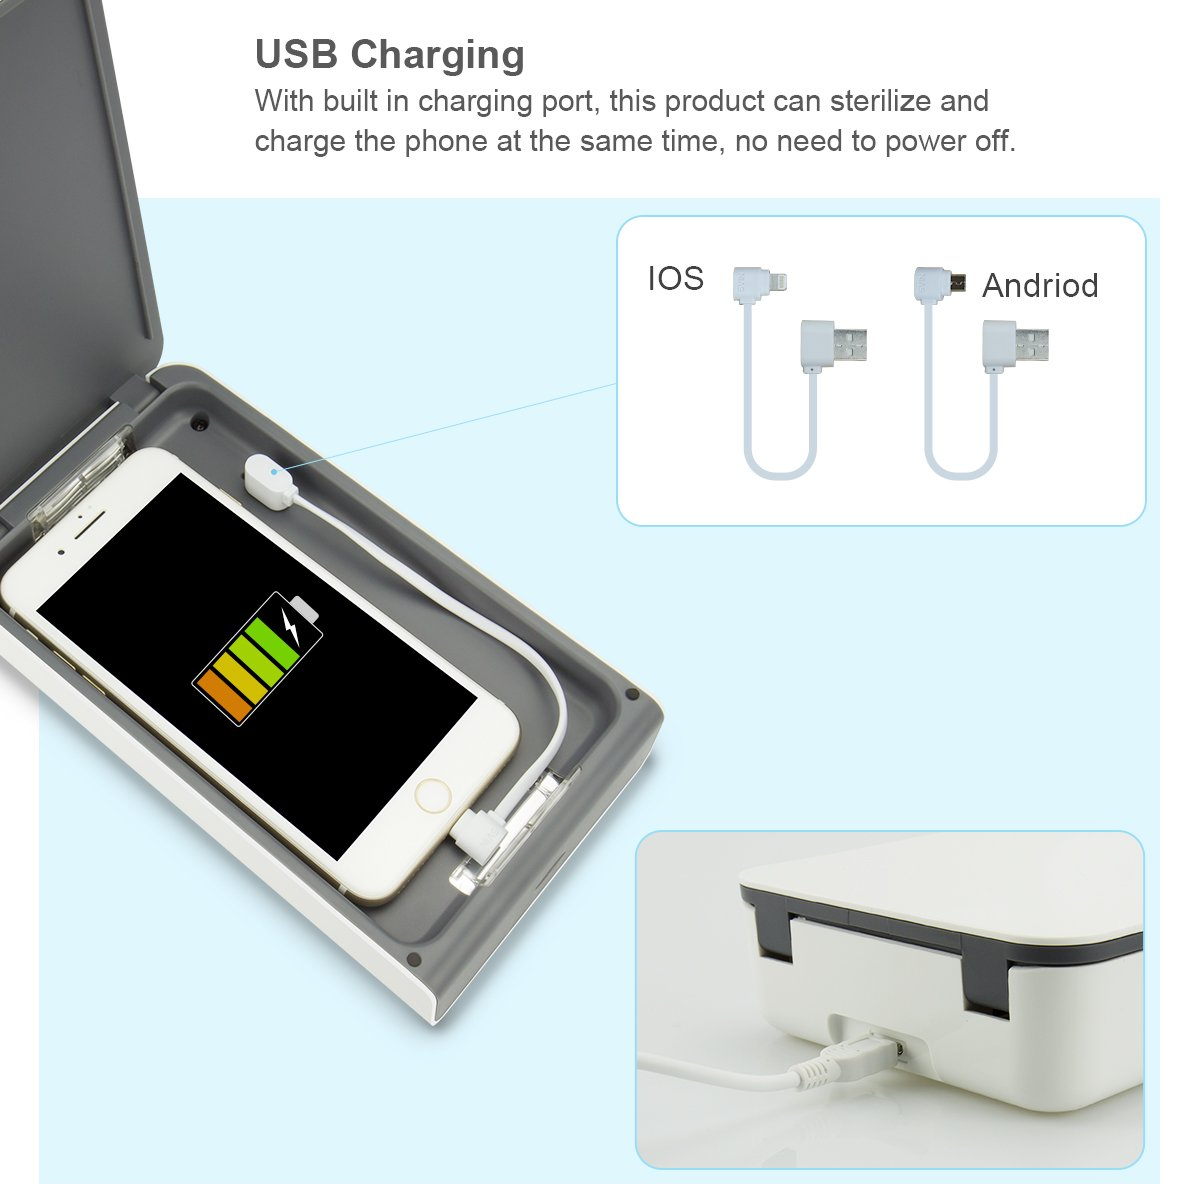 Aneforall 4344499385 Compatible for Phone Sanitizer UV Light Sterilizer Cleaning iPhone Android Smart Phone Toothbrush Jewelry Watches-White